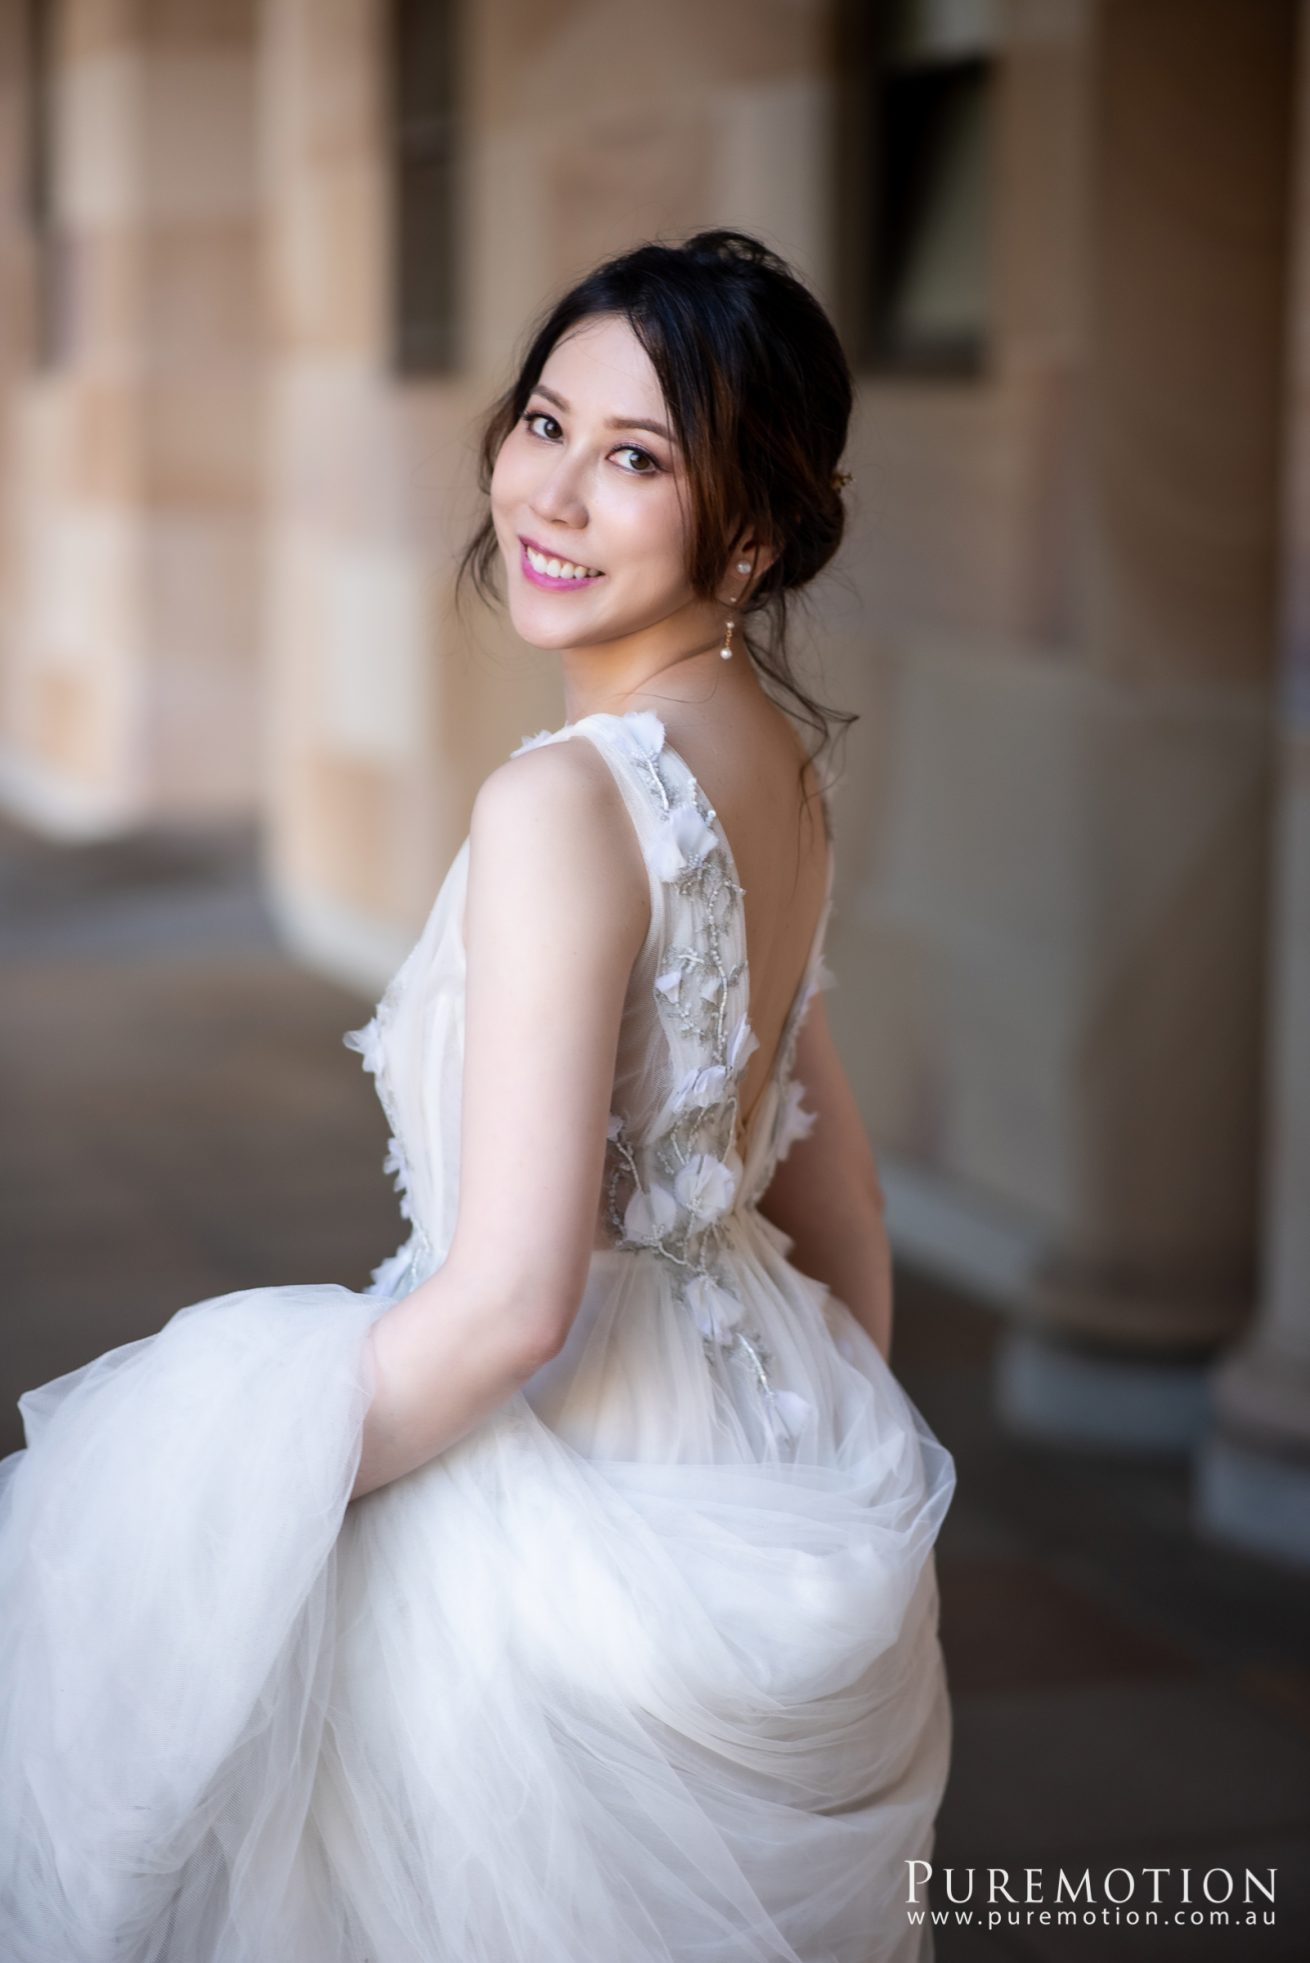 190928 Puremotion Wedding Photography Brisbane Alex Huang AnaDon-0063